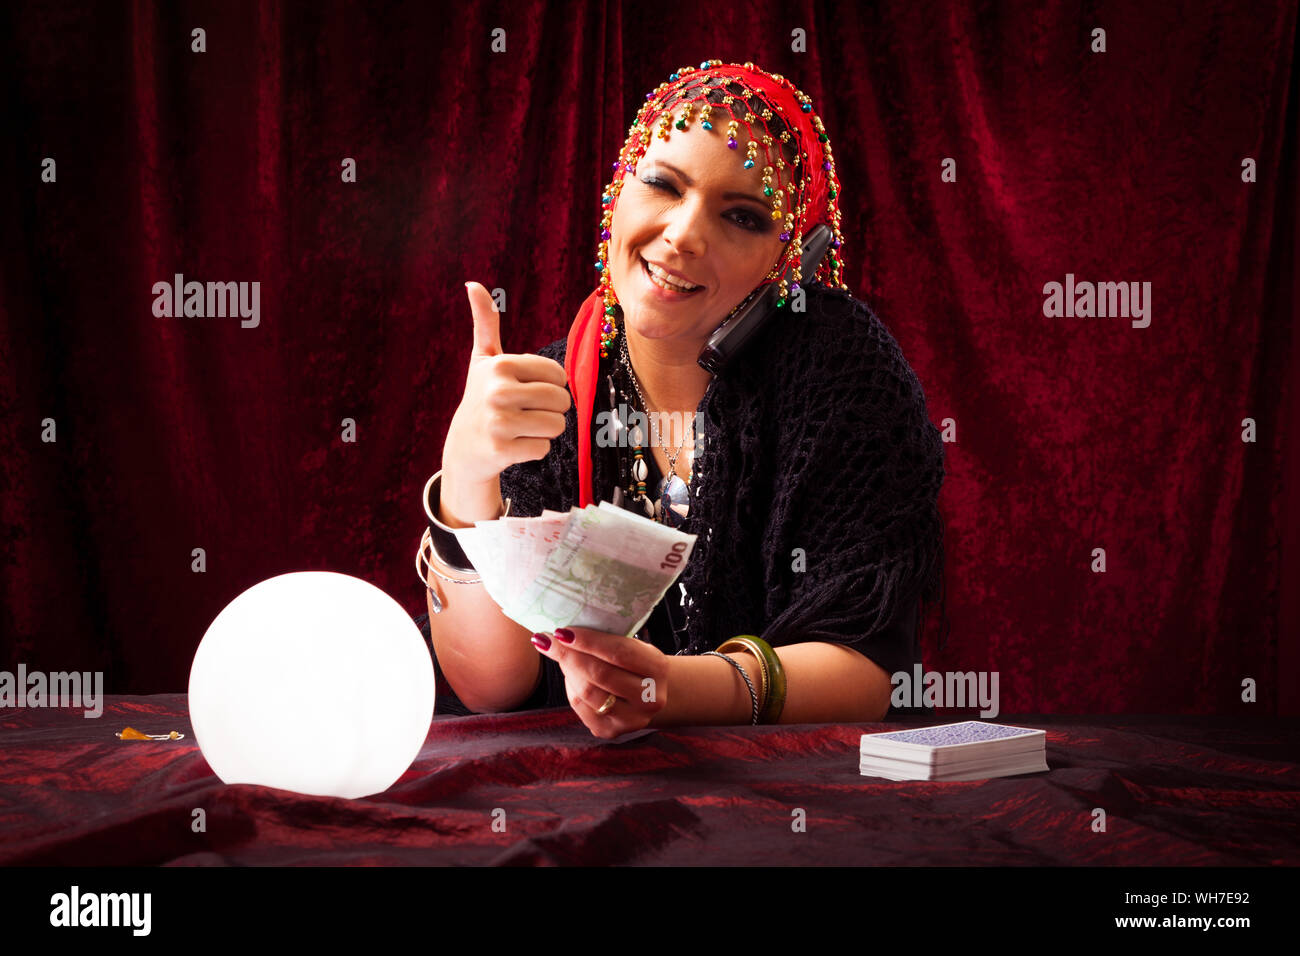 Gypsy Fortune Teller Stock Photos & Gypsy Fortune Teller